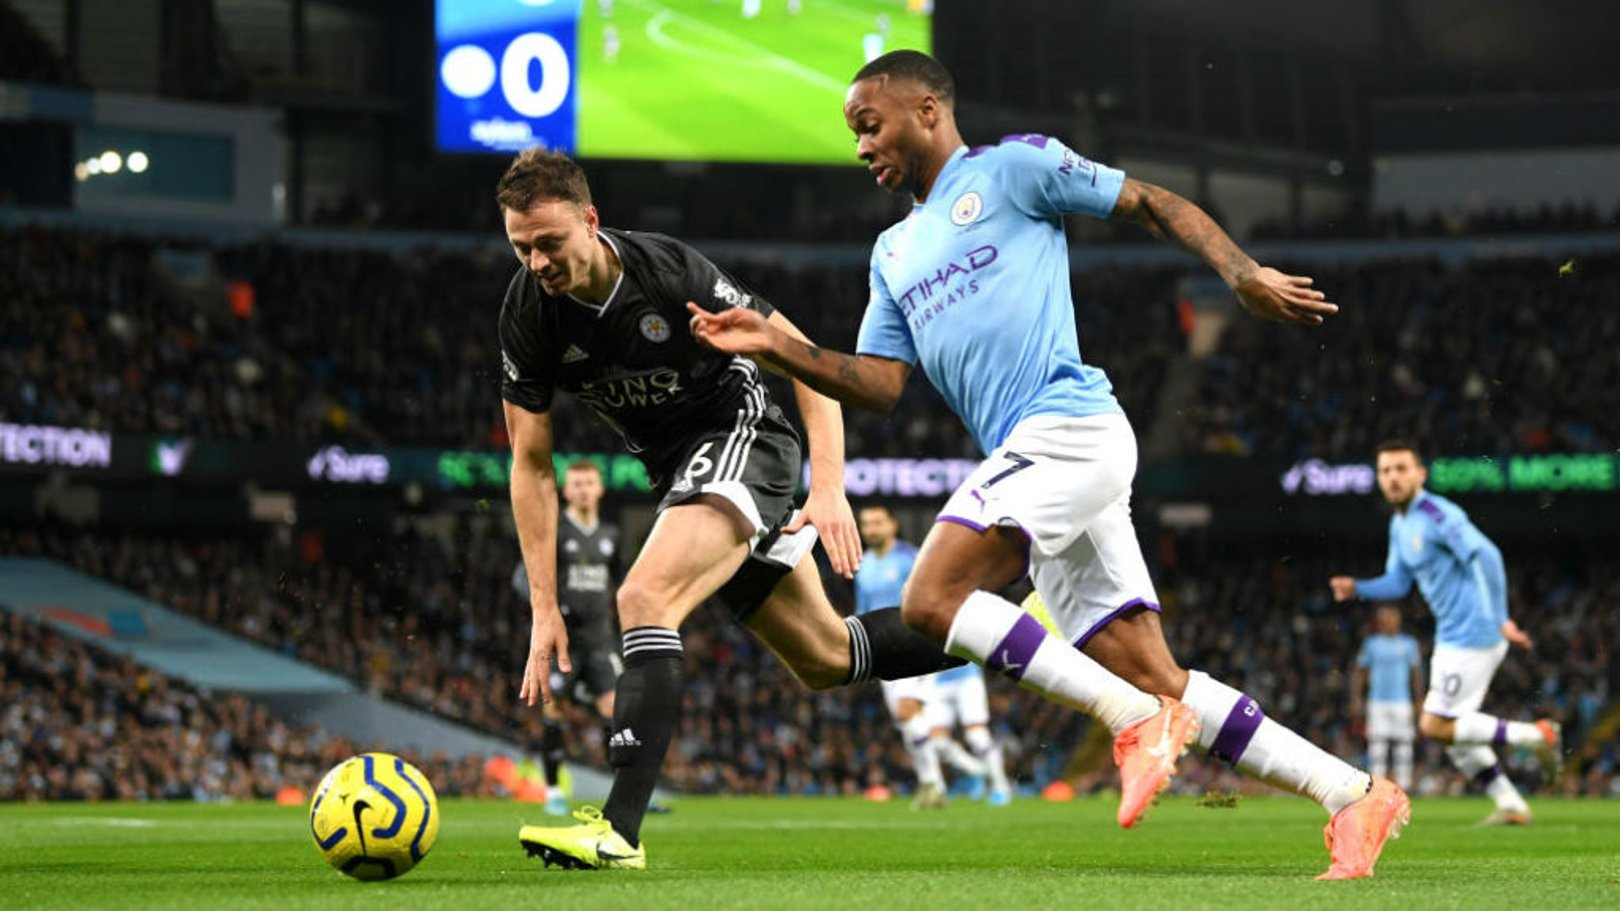 DANGERMAN: Sterling looks to get through on goal early on.